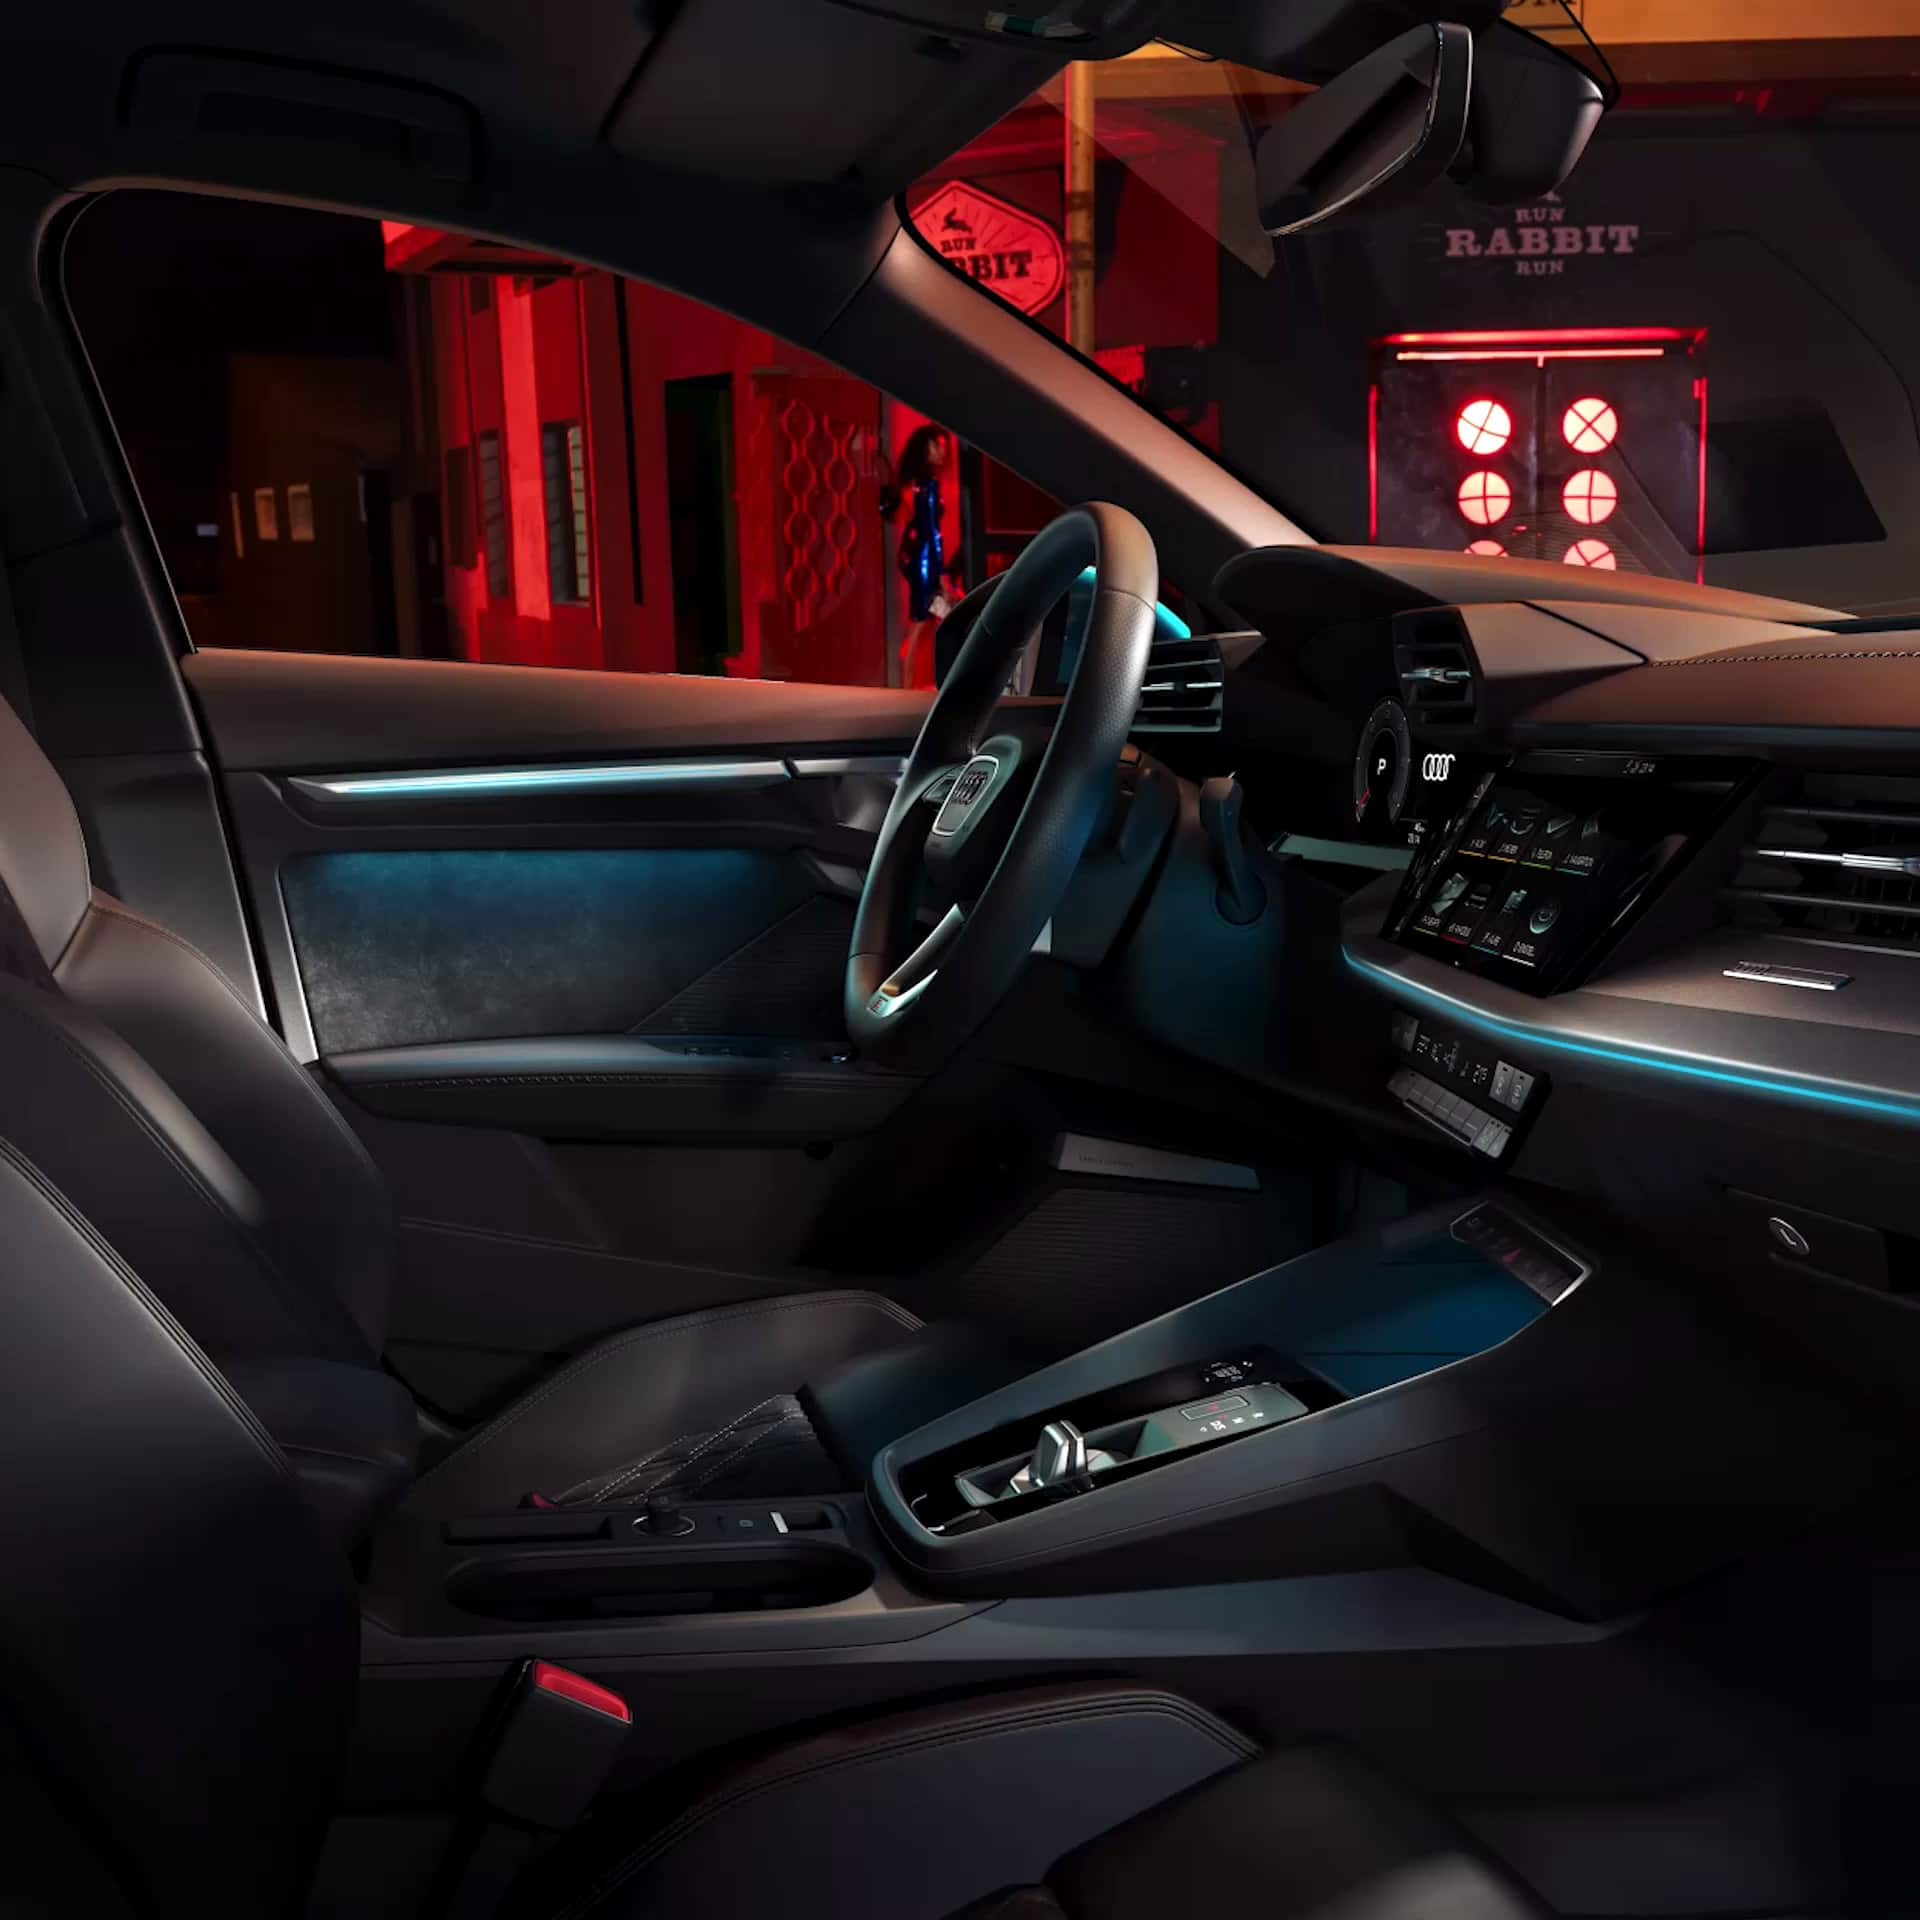 Animated ambiente light in the Audi A3 Sportback